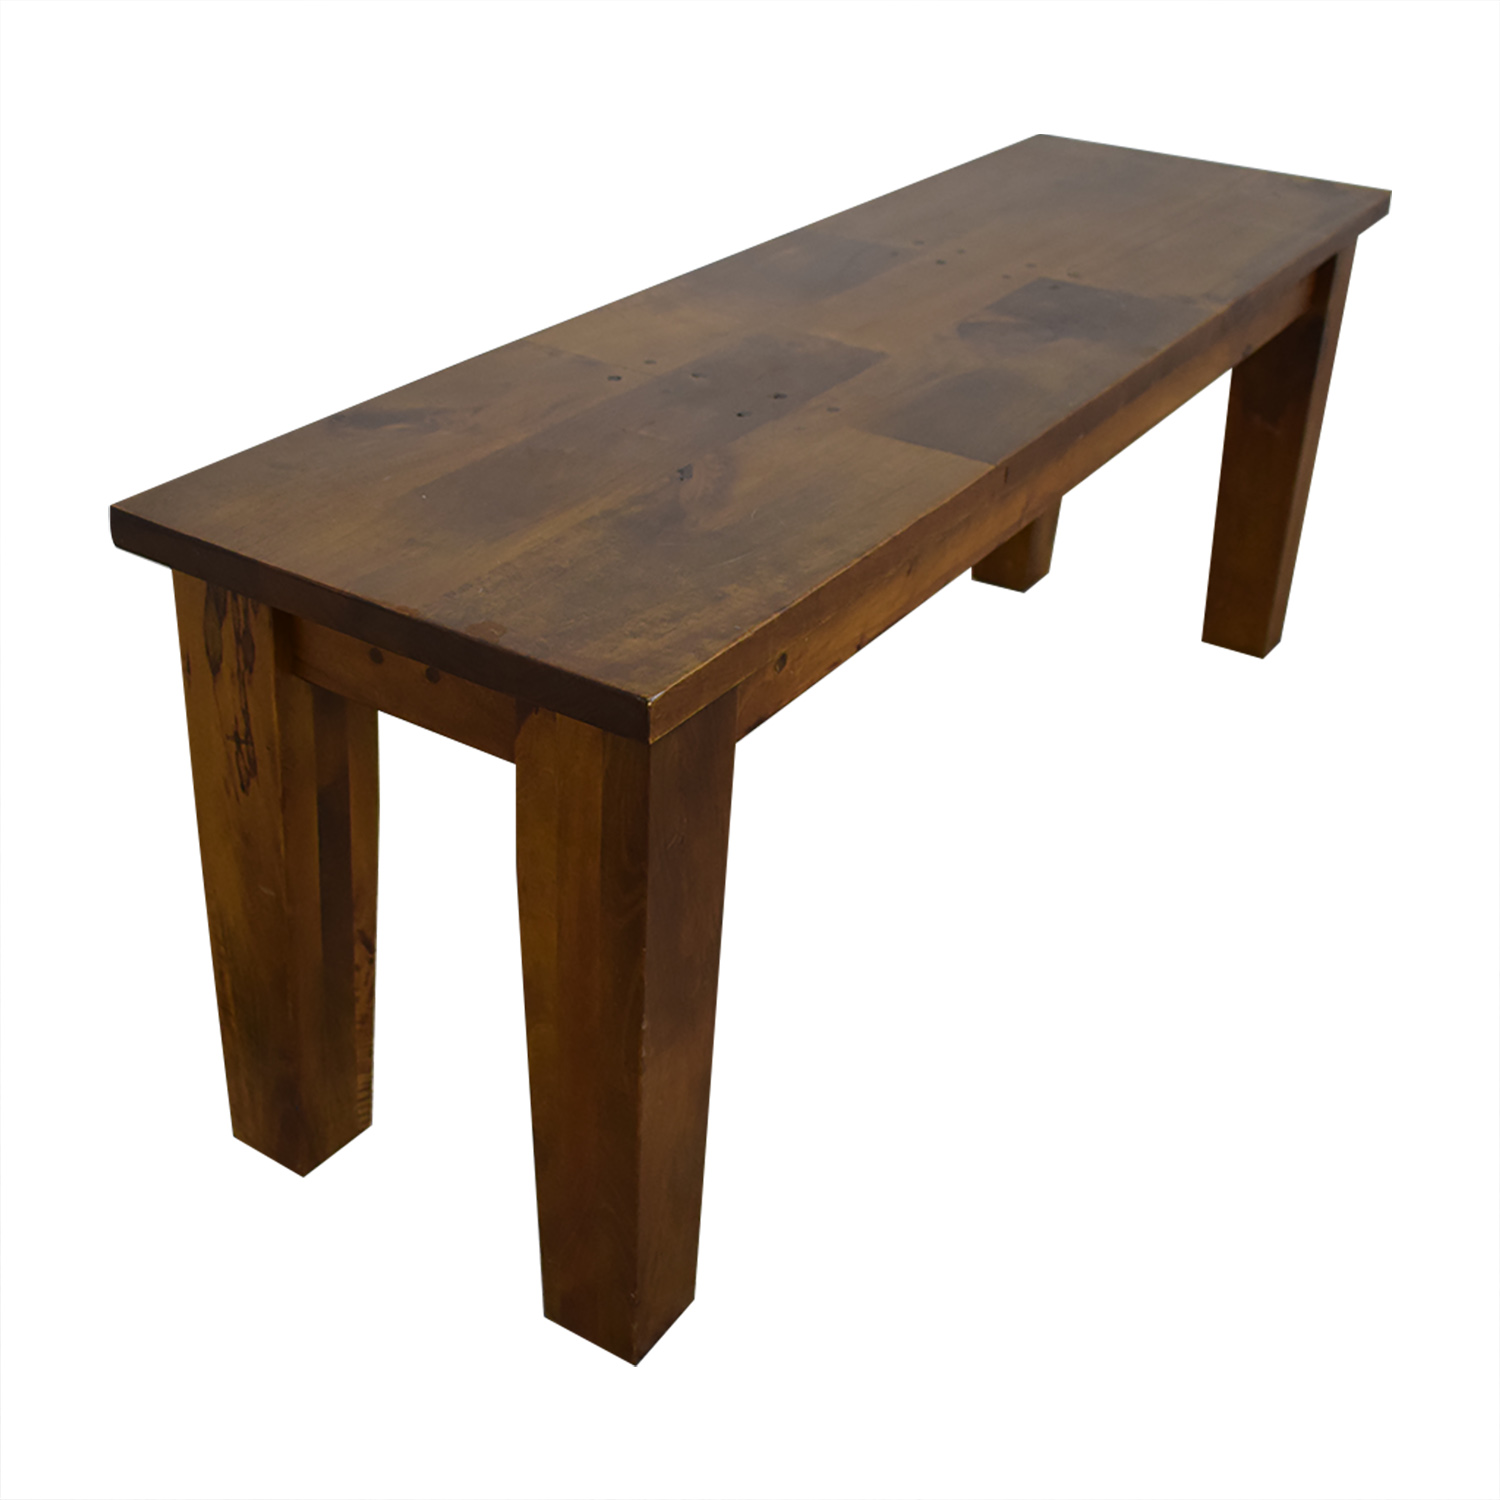 Crate & Barrel Crate & Barrel Basque Honey Dining Bench Chairs